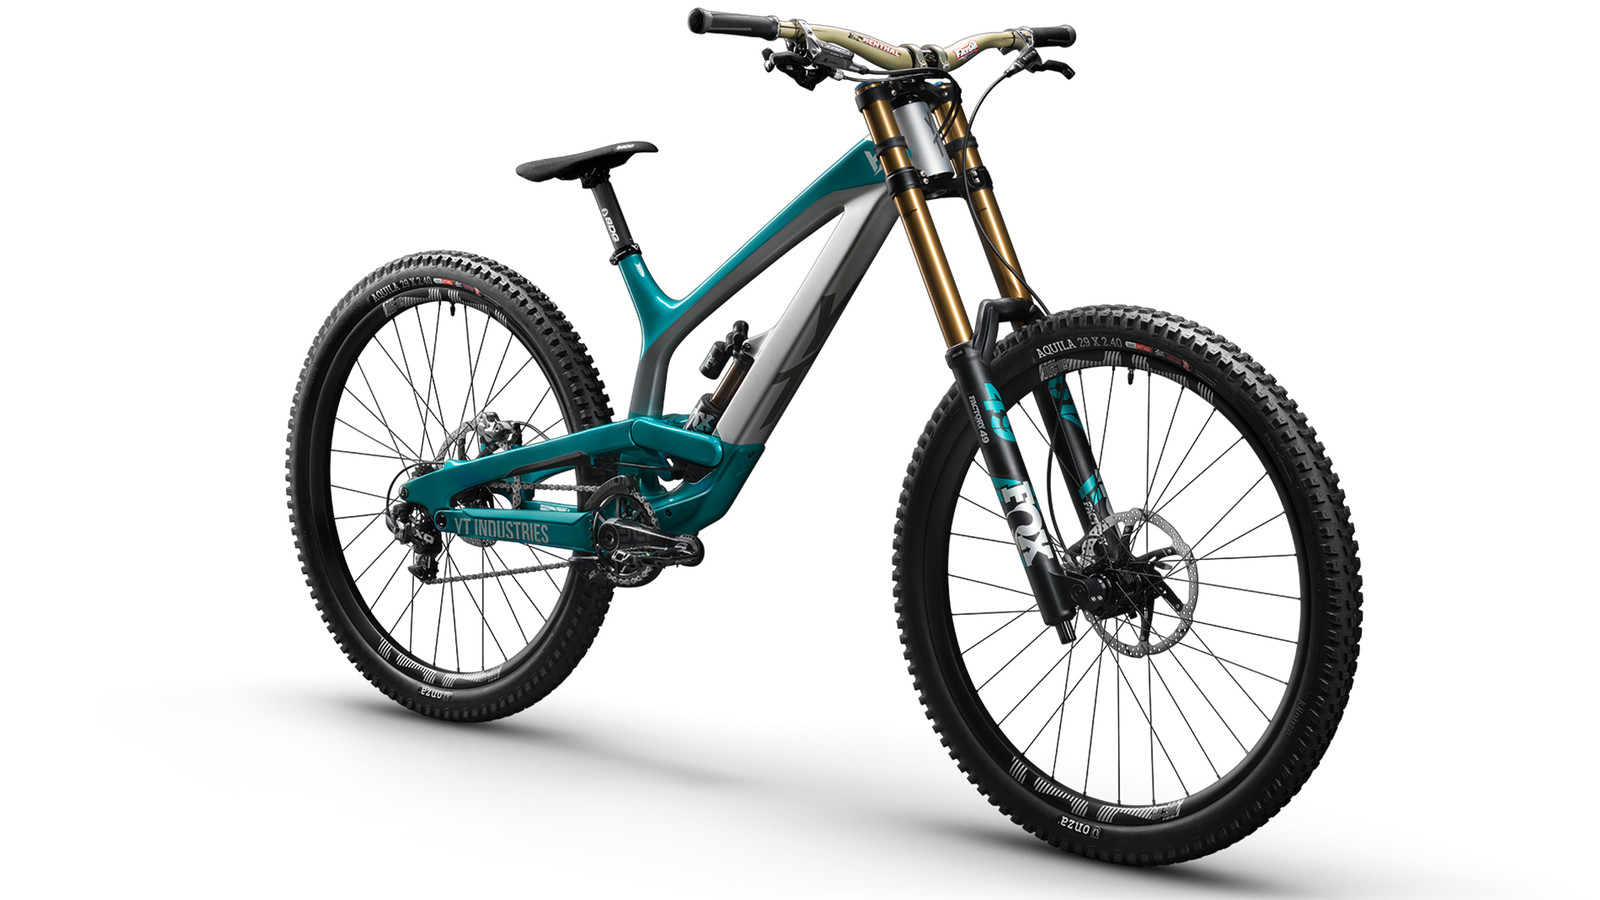 cd8e1357869 YT Launches the TUES 29 Downhill Bike - Mountain Bikes Press ...